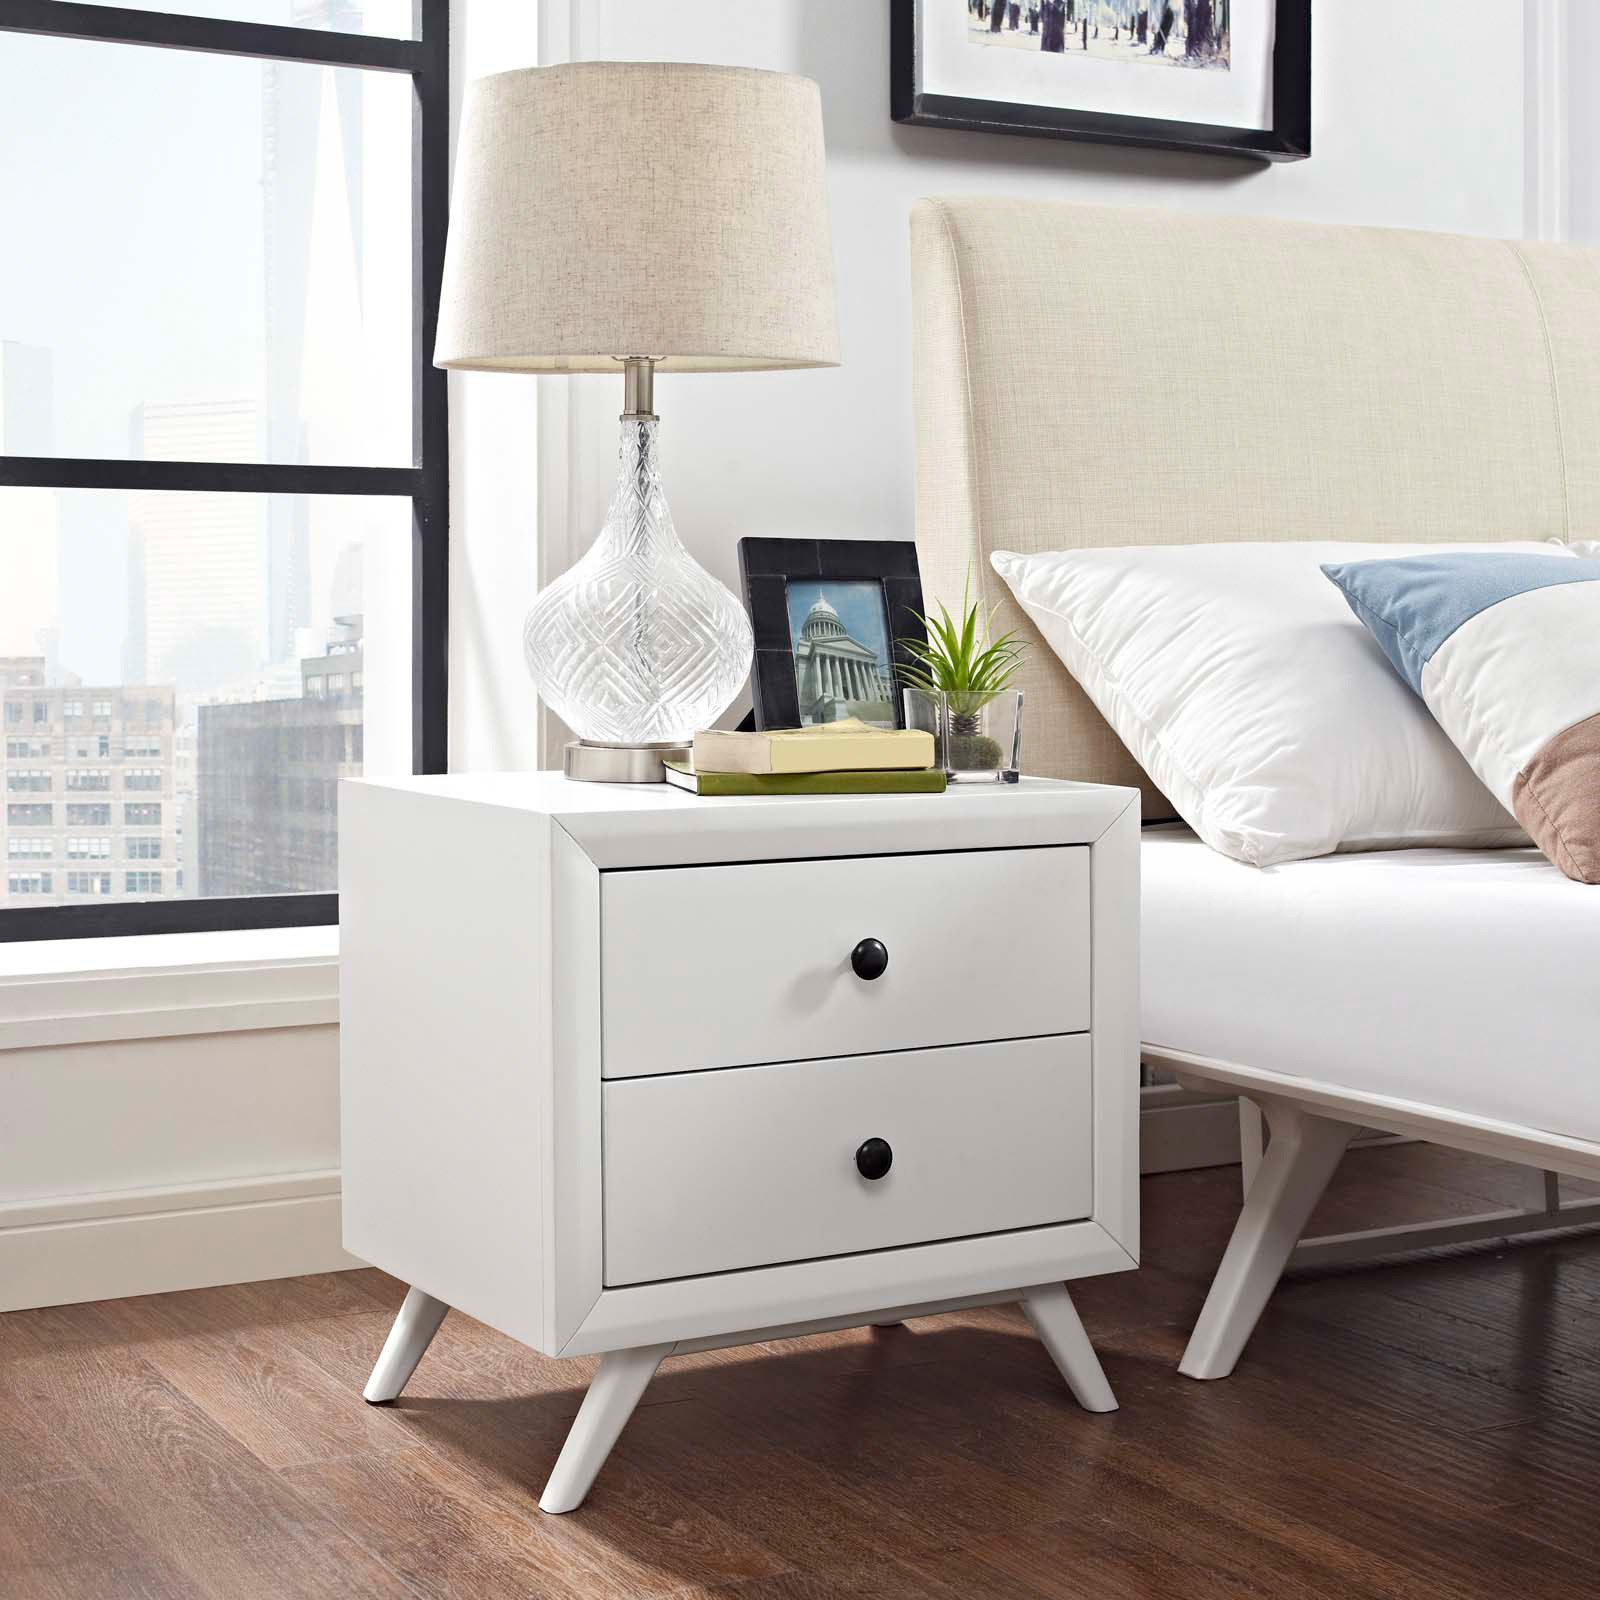 Modway Tracy Nightstand in White